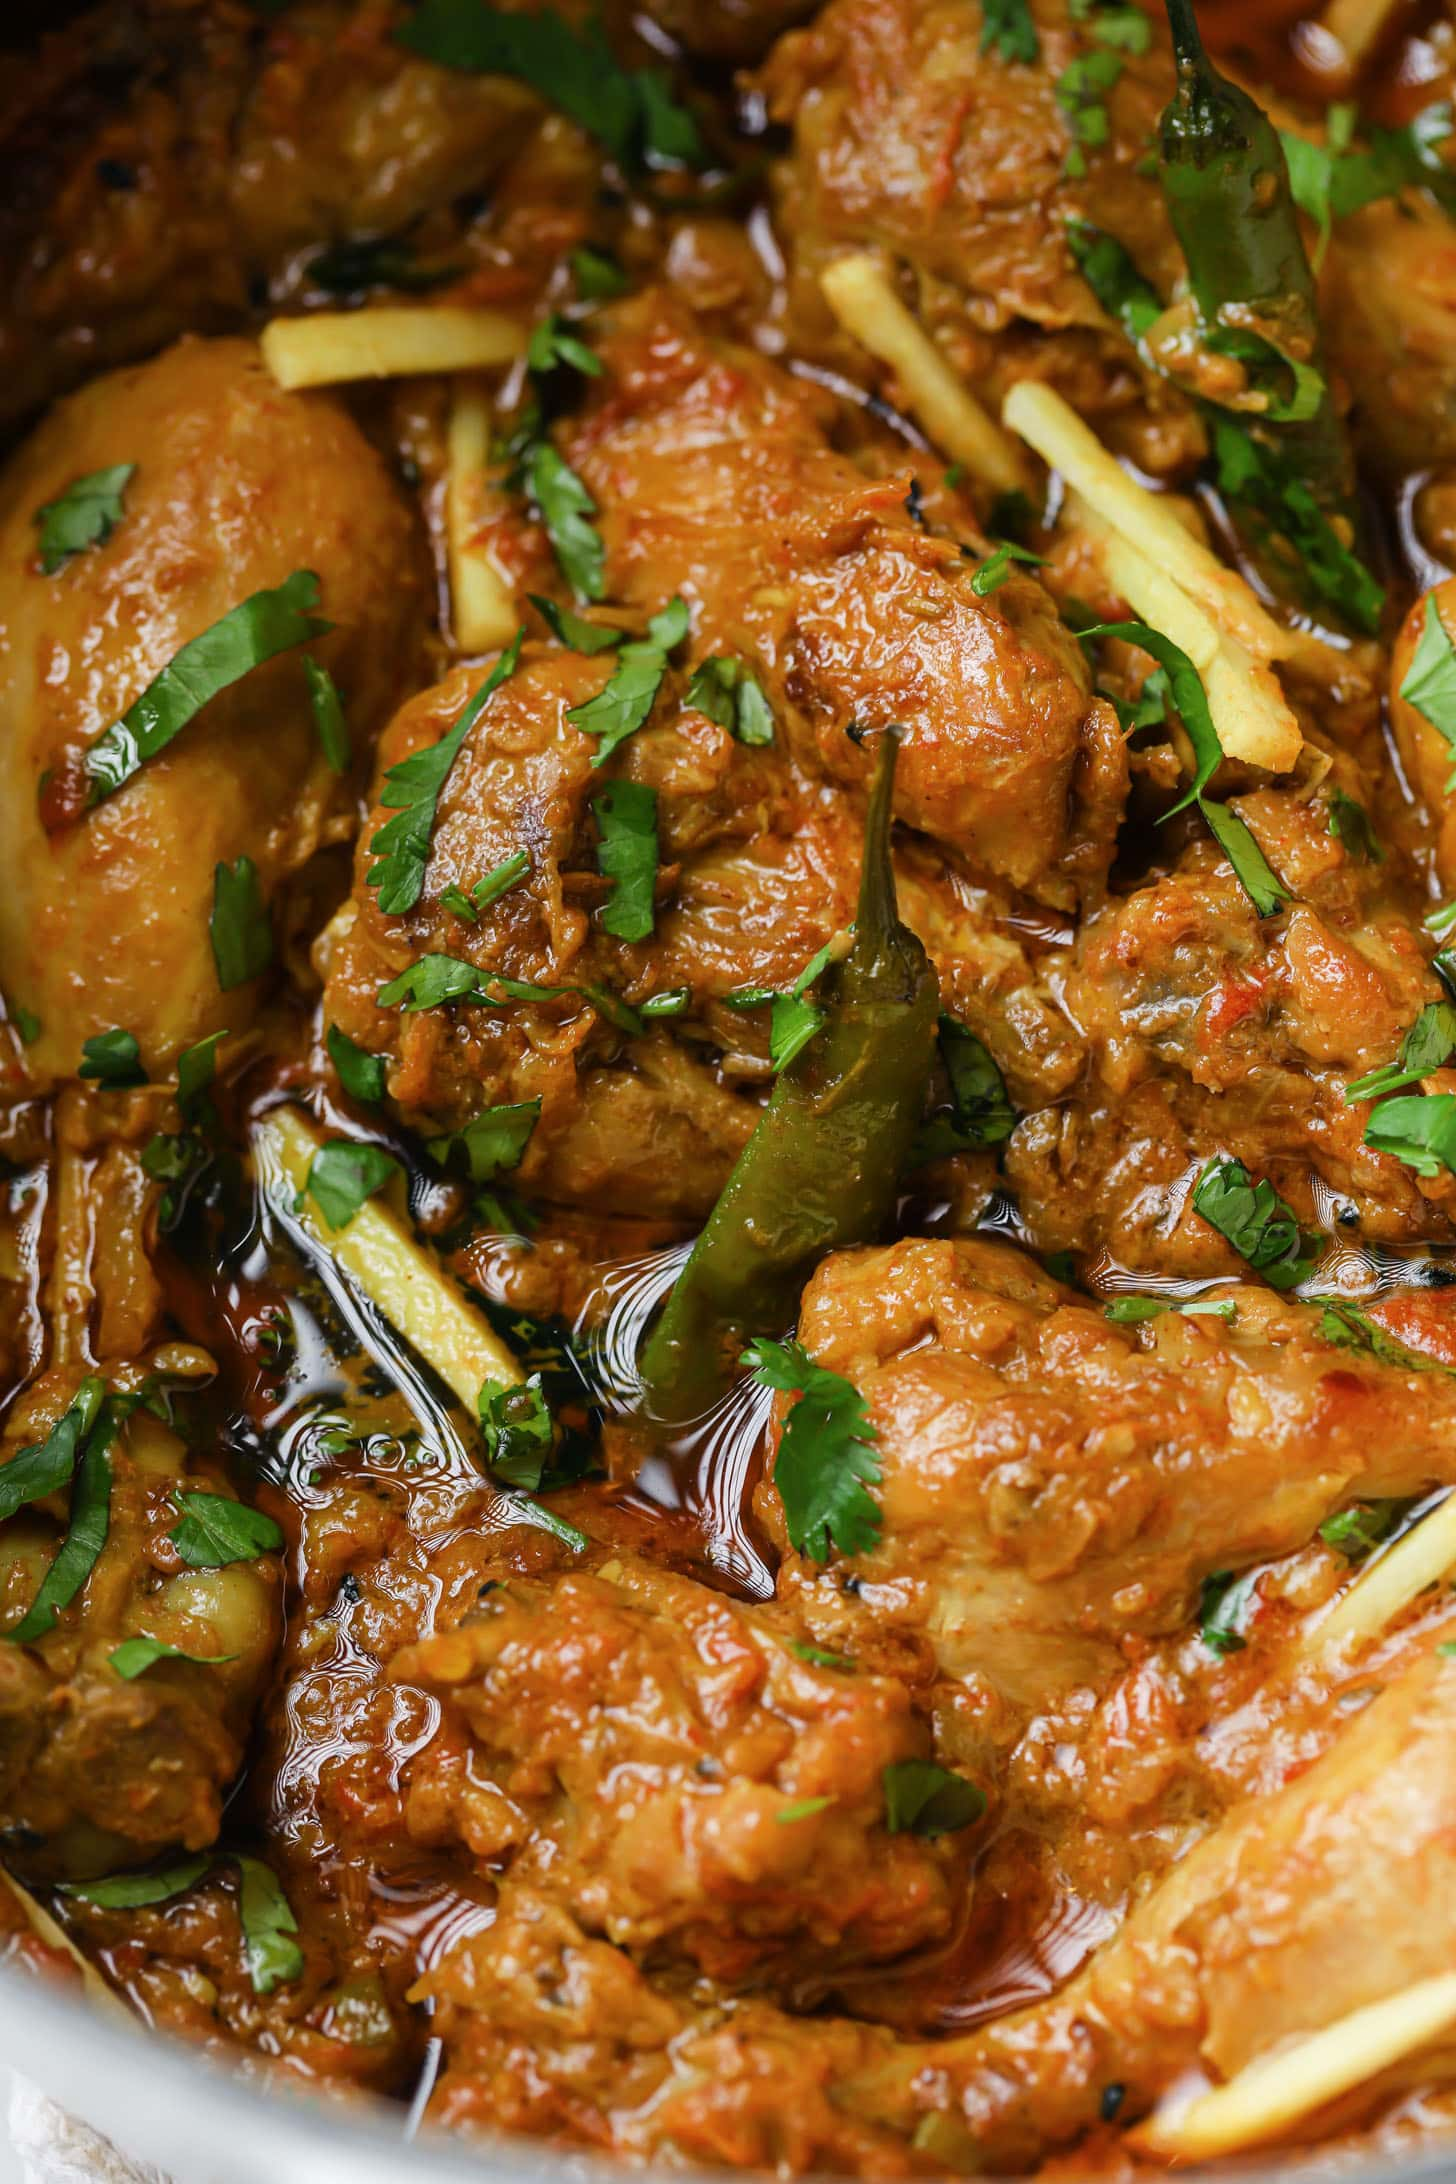 A close up of Achari Chicken garnished with cilantro and julienned ginger